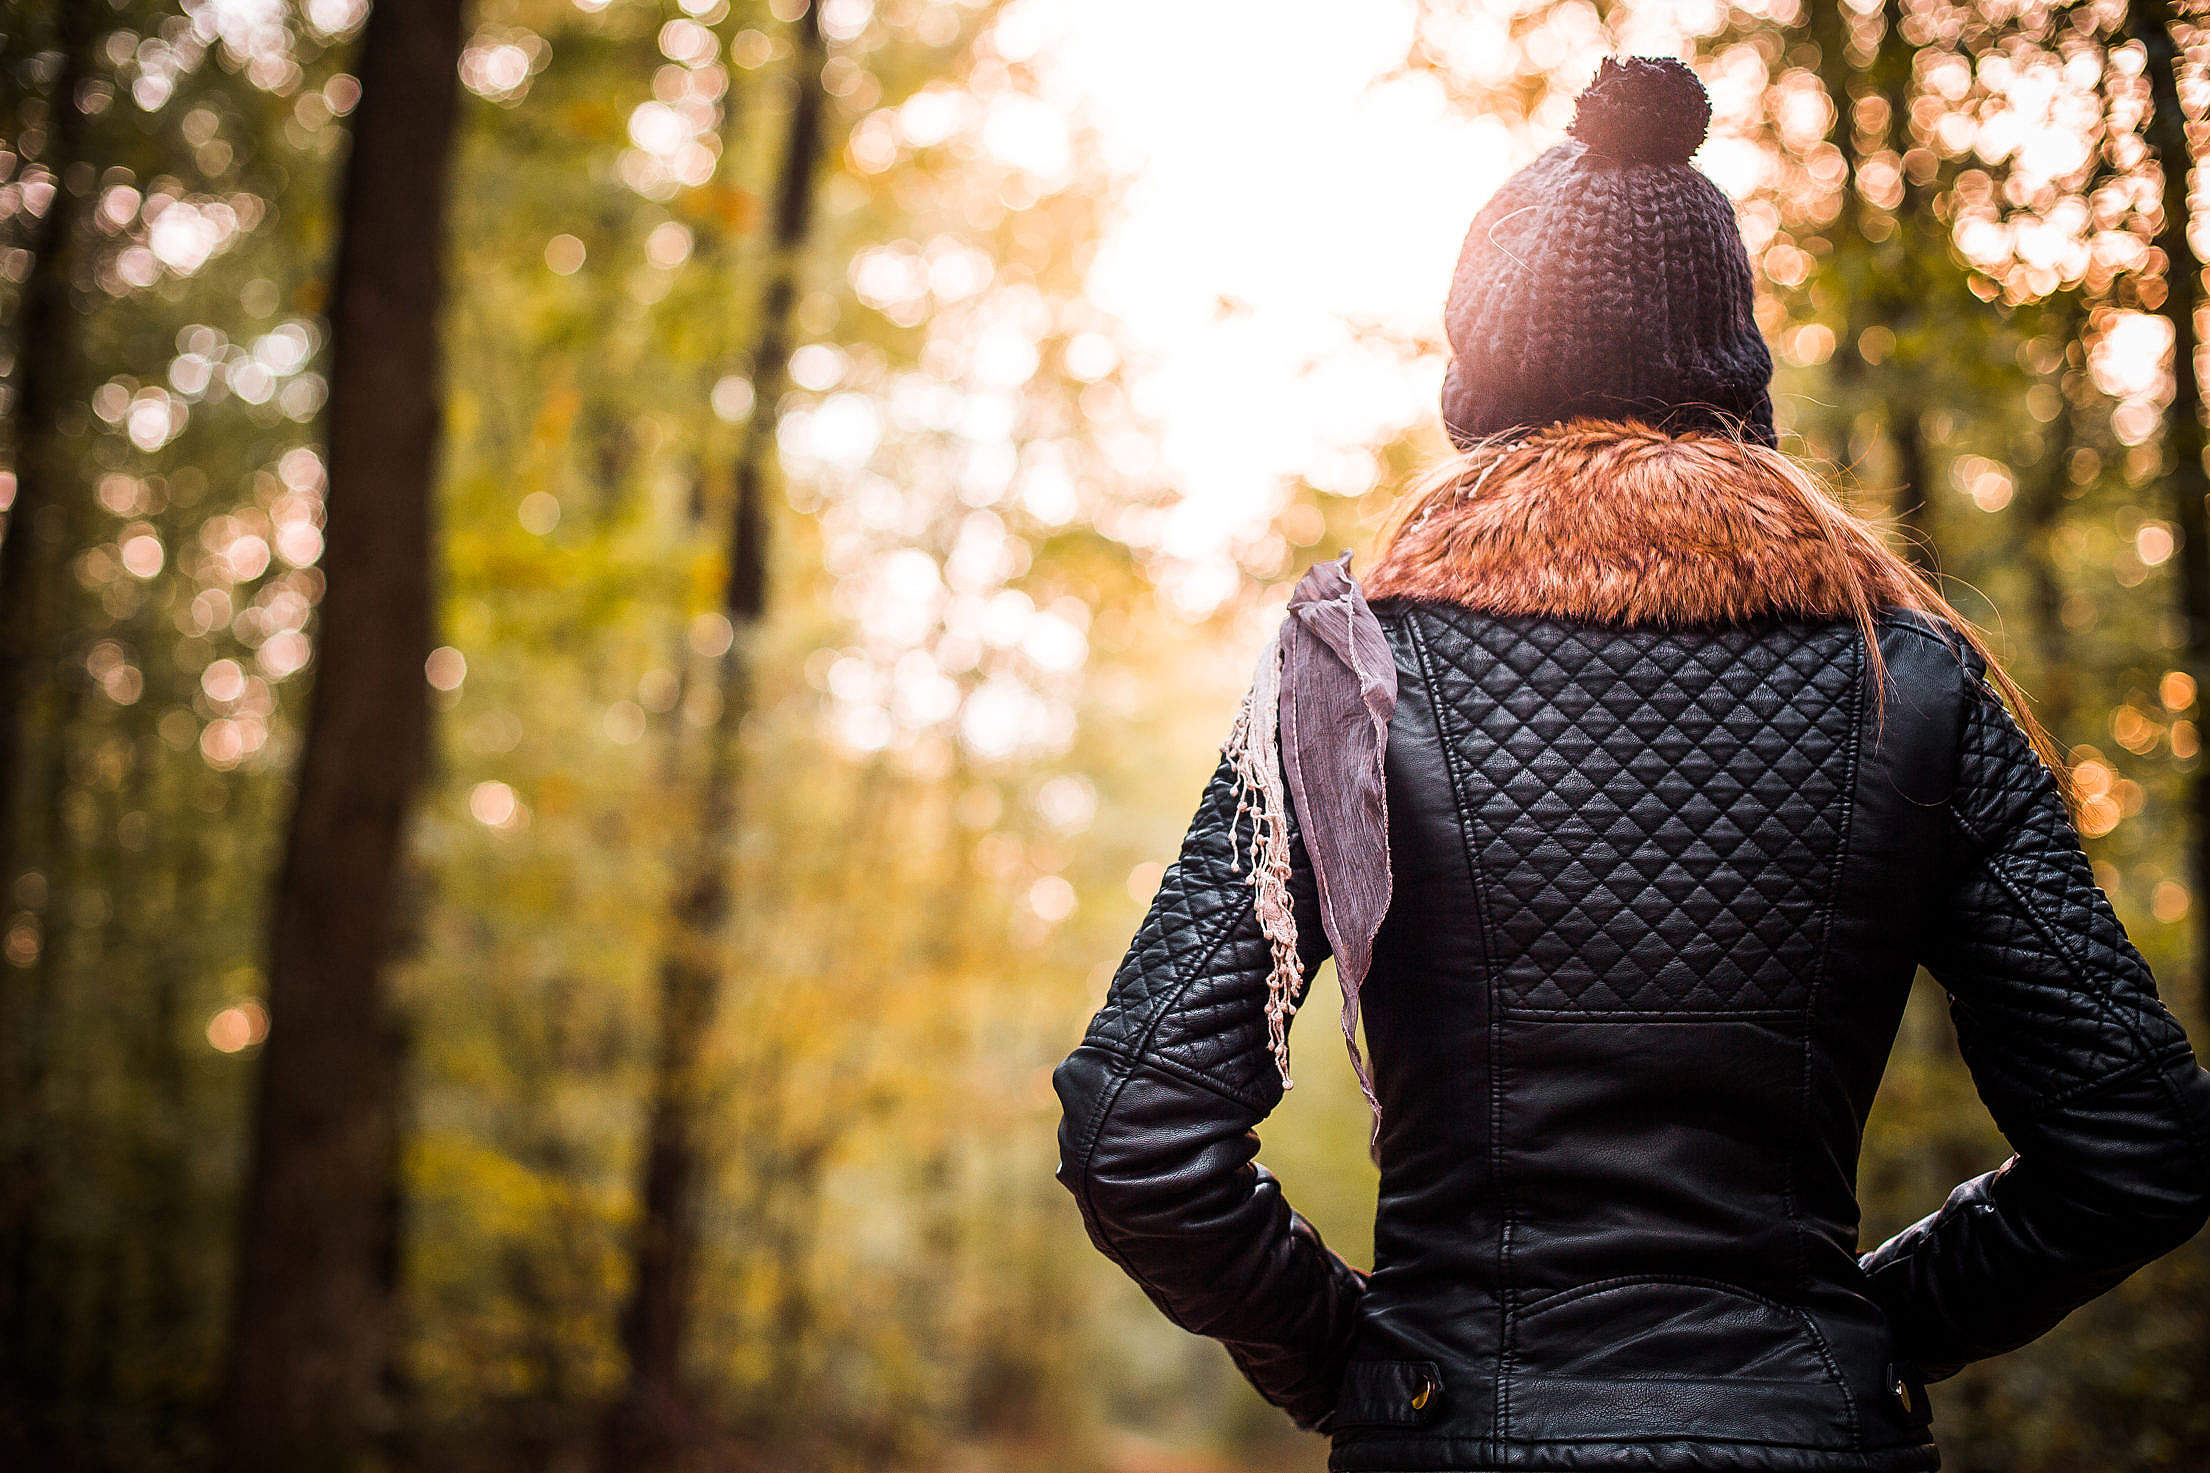 Download Beautiful Girl in Forest Turning Her Back Free Stock Photo